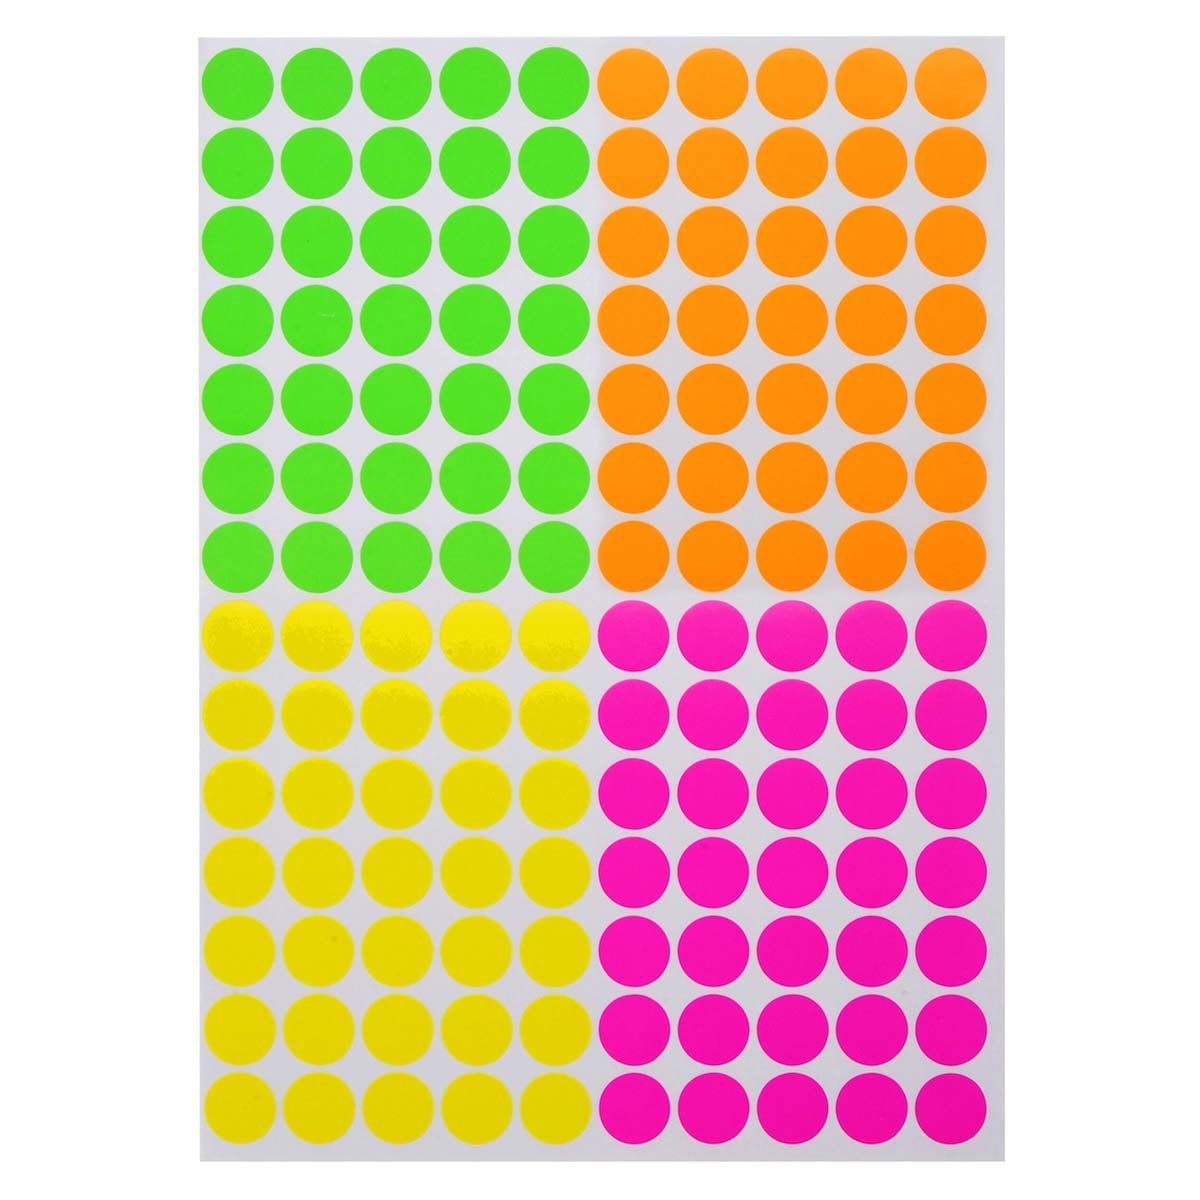 ONUPGO Pack of 2240 Round Color Coding Labels Circle Dot Stickers, 3/4'' Fluorescent Dot Labels Sticker, Bright Neon Colors Label (Assorted Neon Colors - (Pink, Green, Red, Yellow)) by OnUpgo (Image #2)